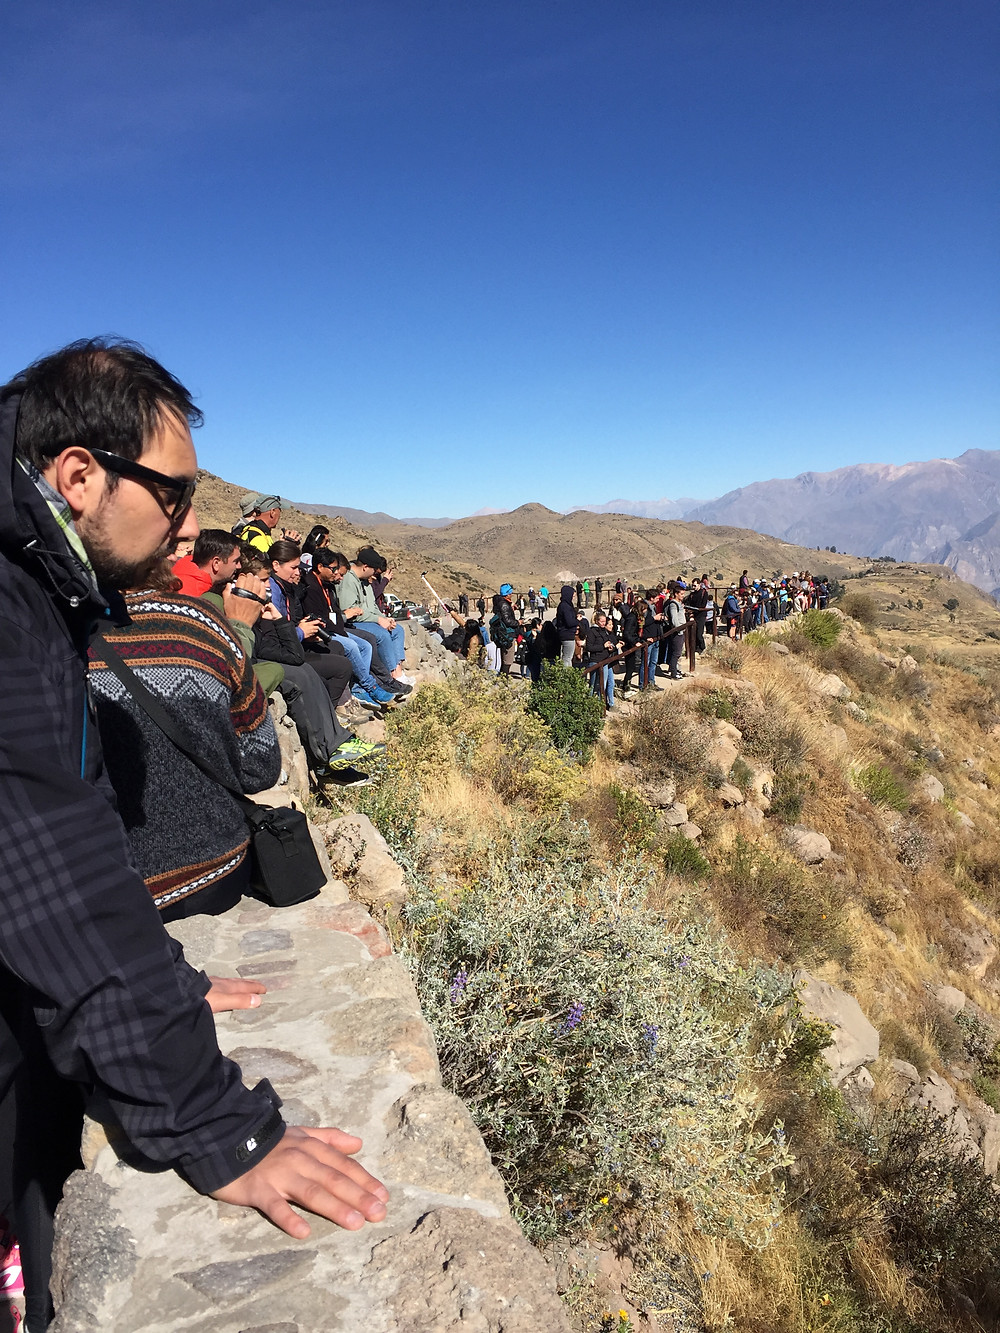 People watching the condors